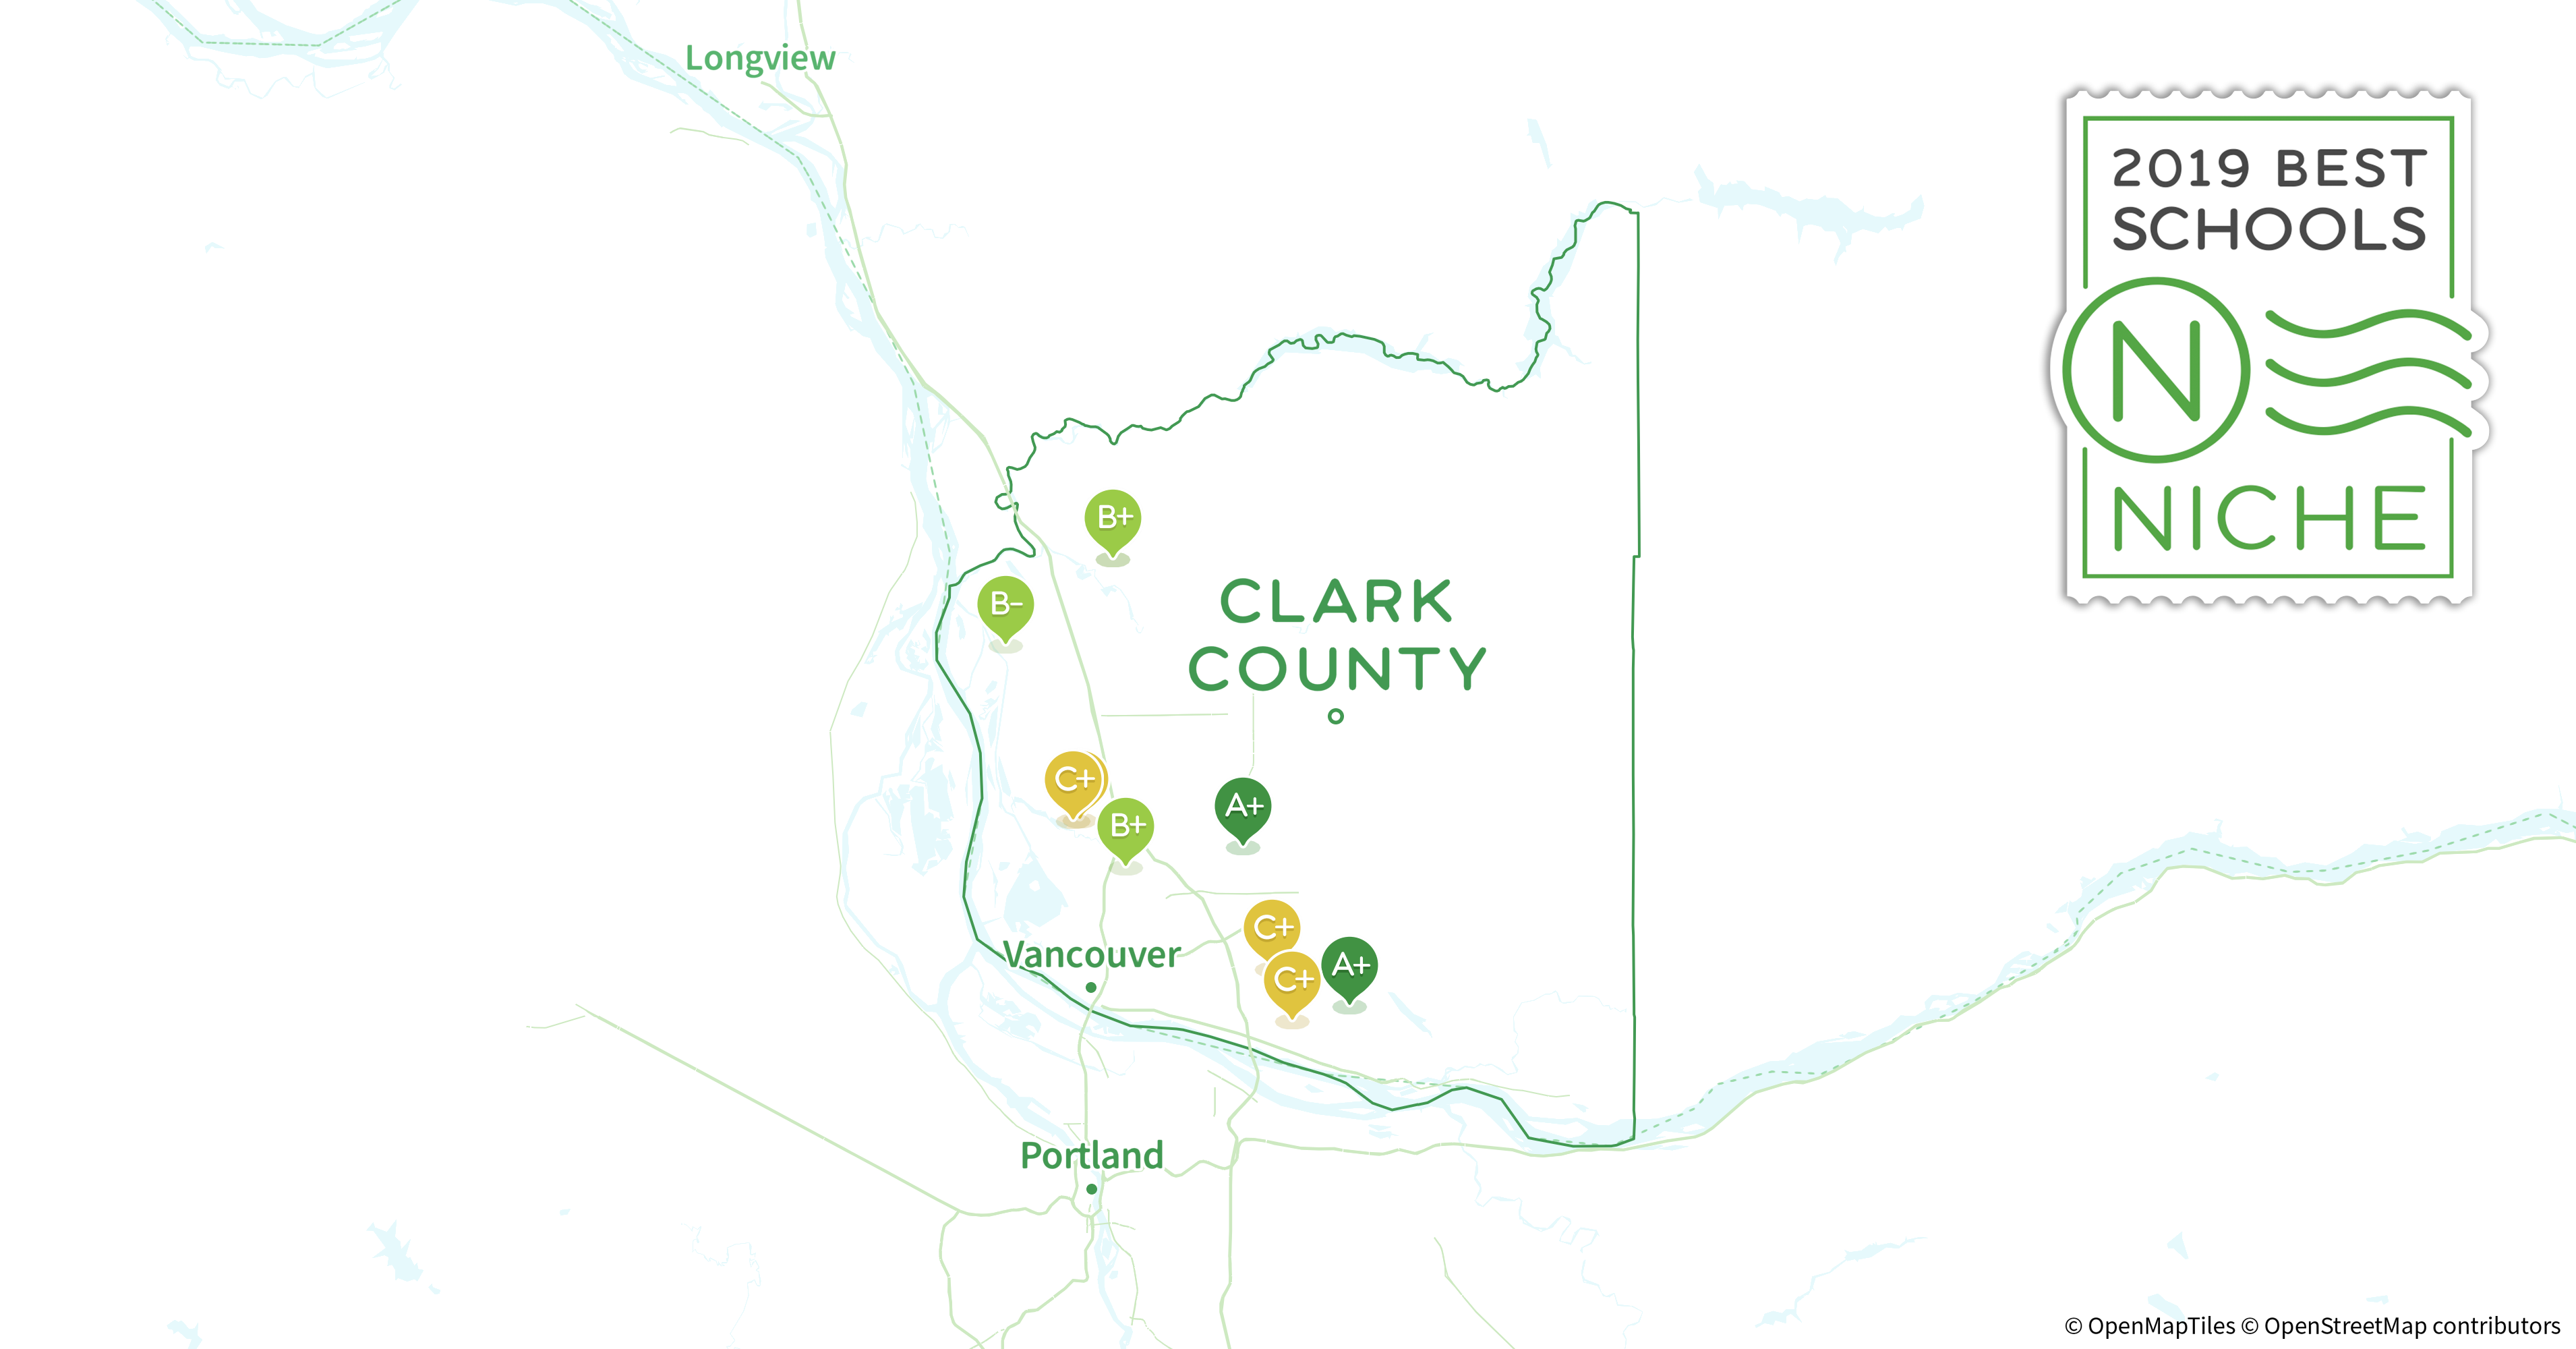 School Districts In Clark County Wa Niche